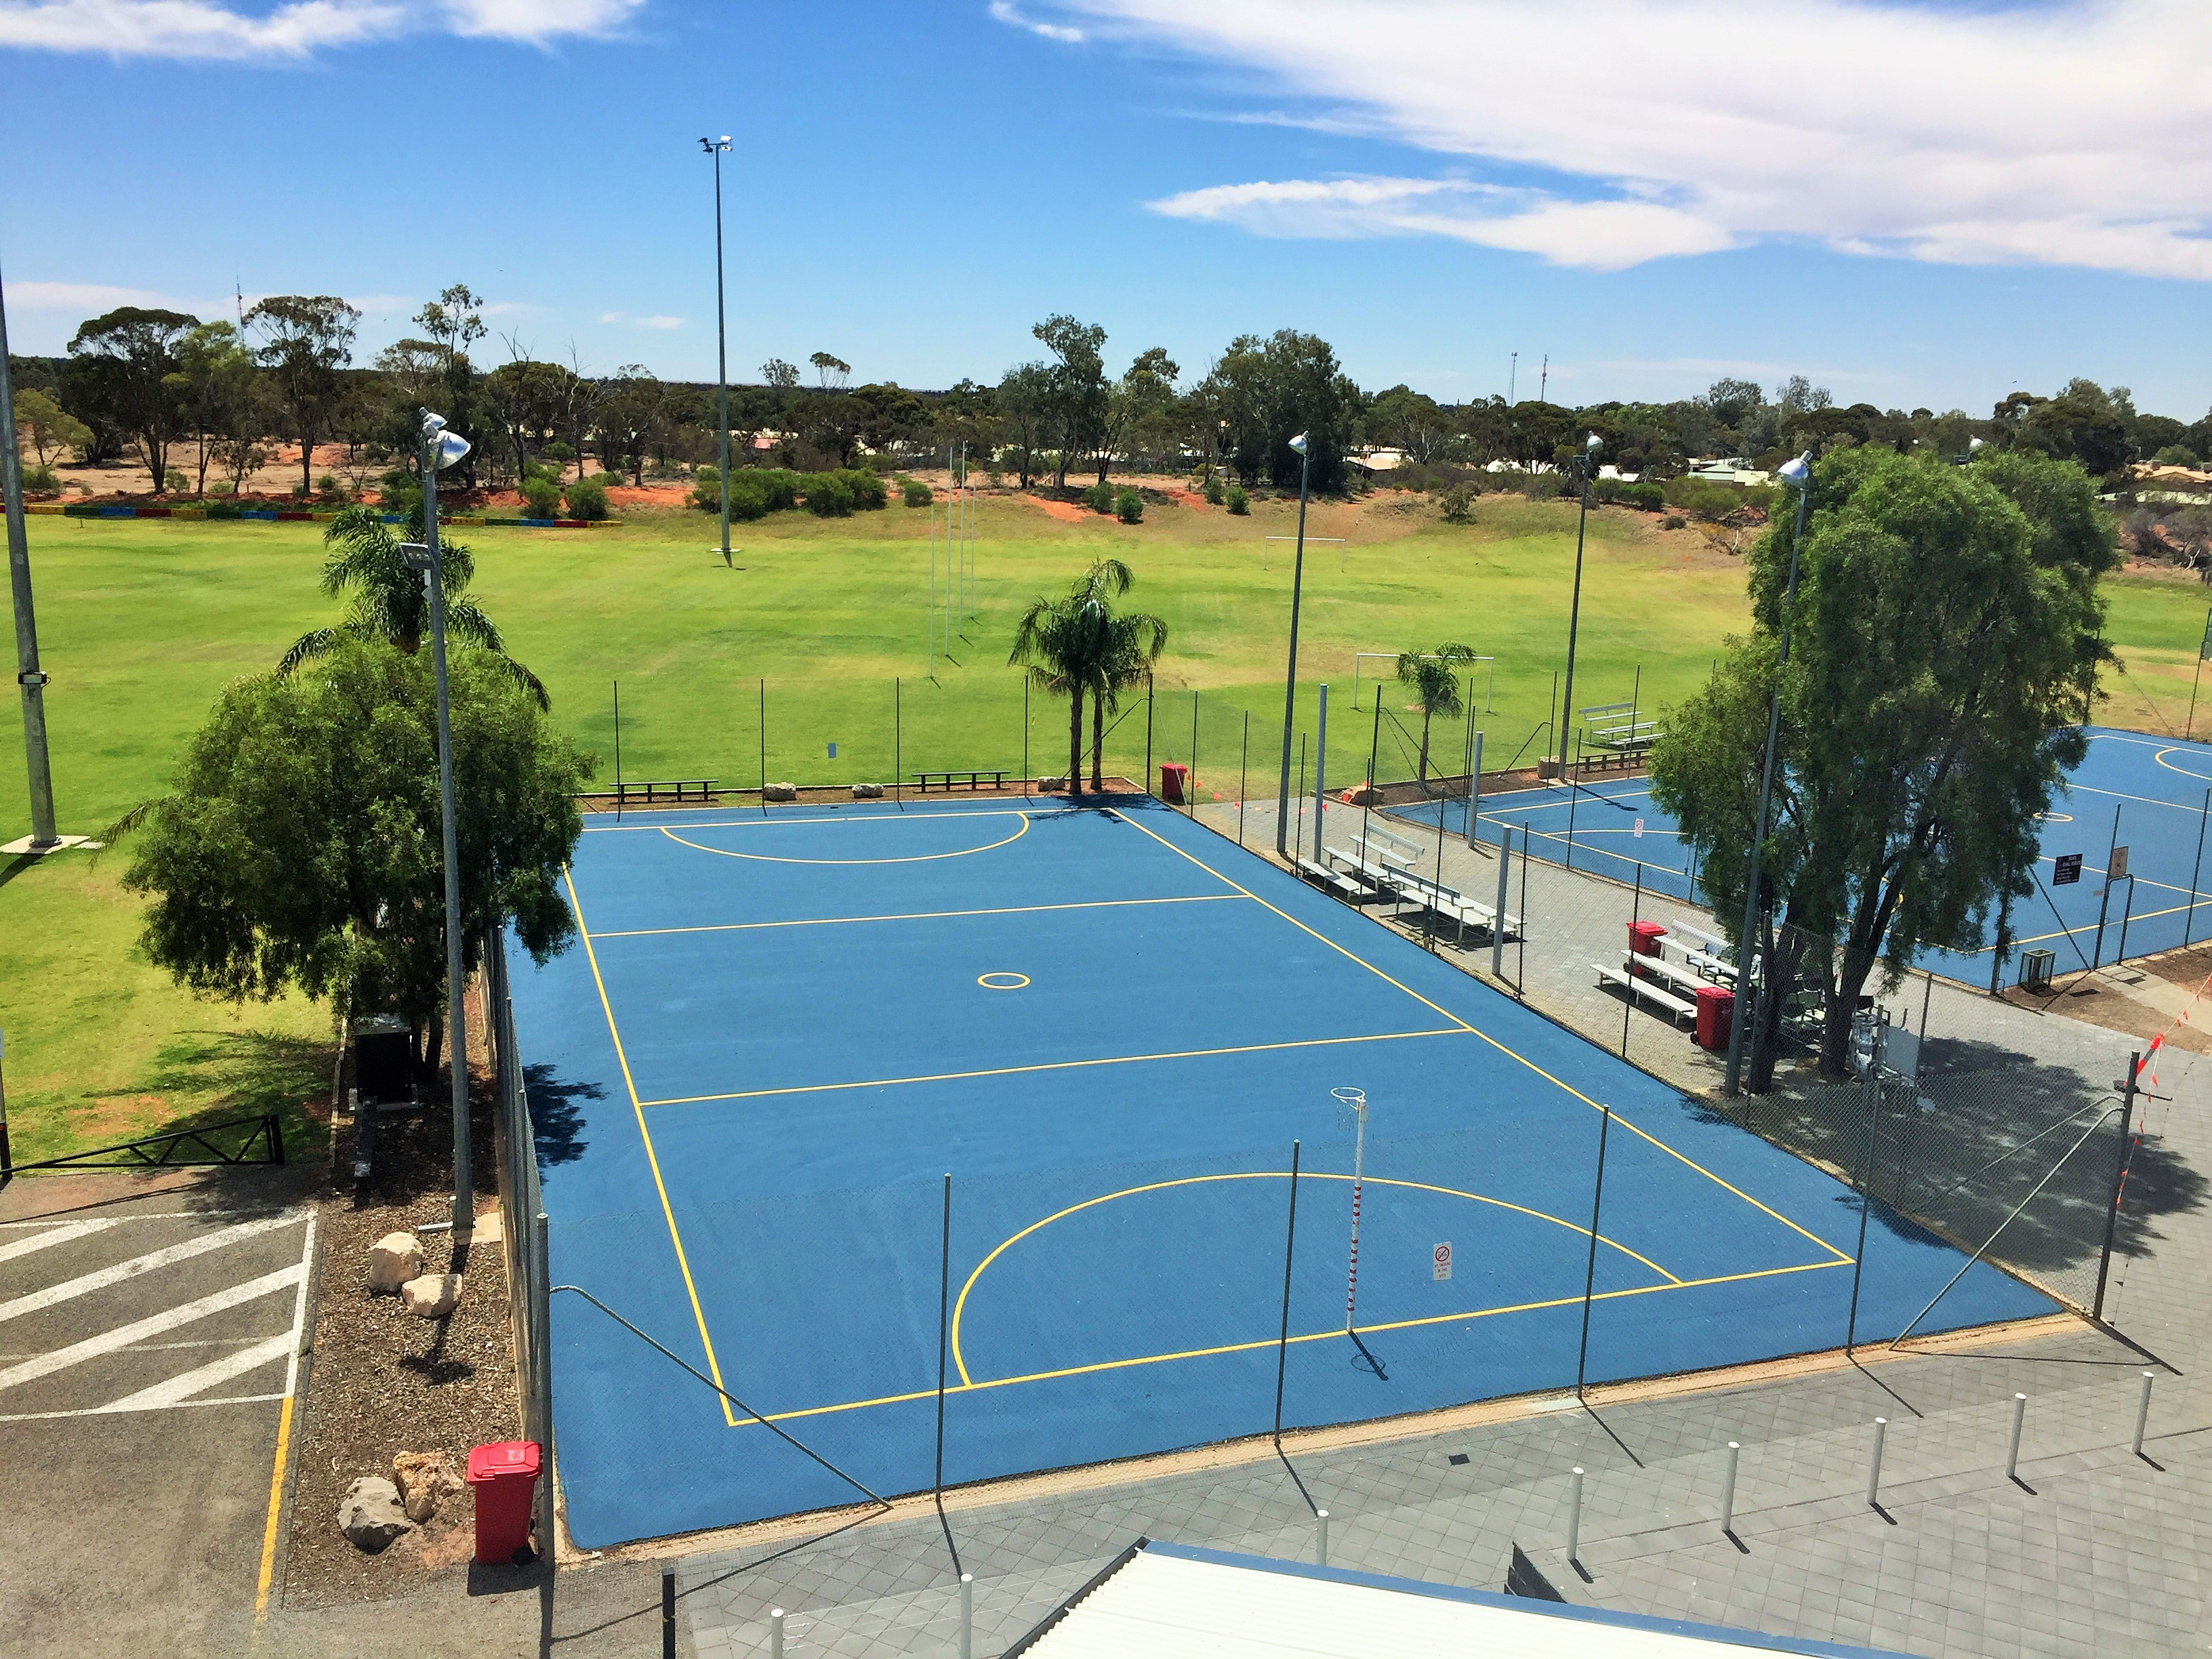 Resurfaced netball courts